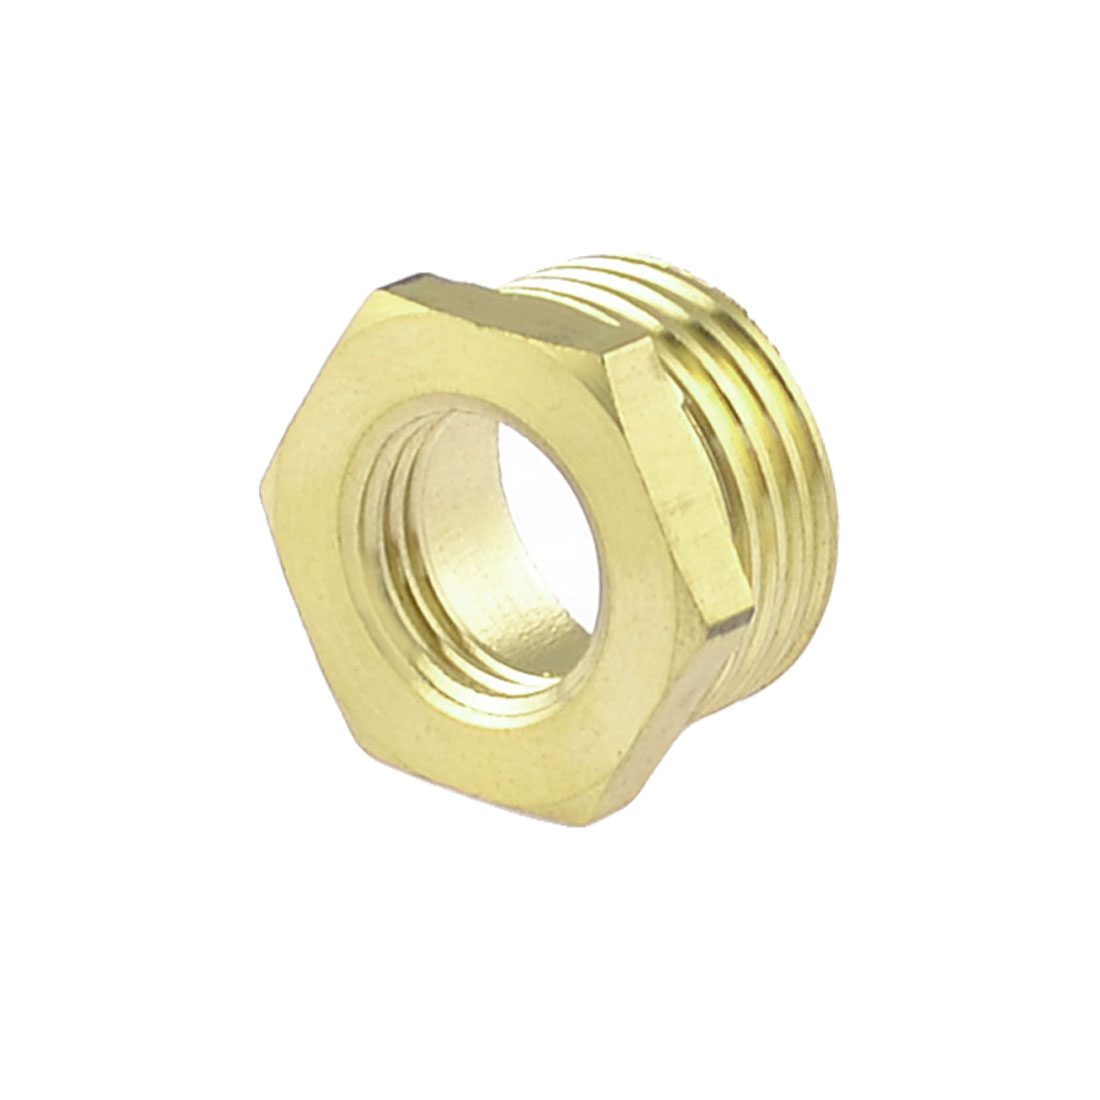 "Brass 1/2"" NPT Male to 1/4"" NPT Female Thread Hex Bushing Piping Quick Coupler"